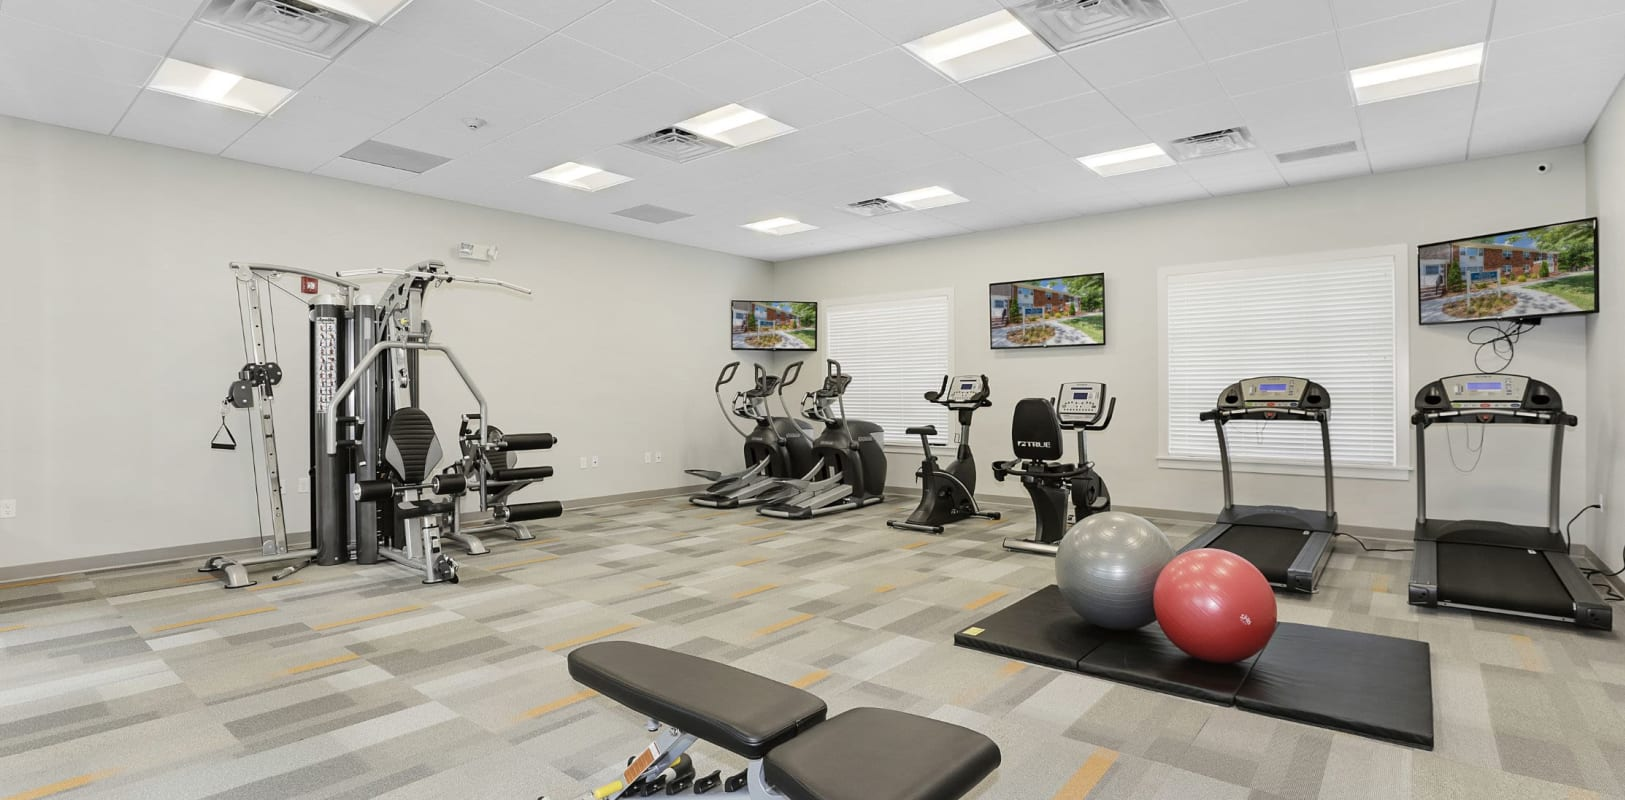 State-of-the-art fitness center at Nieuw Amsterdam Village in South Amboy, New Jersey